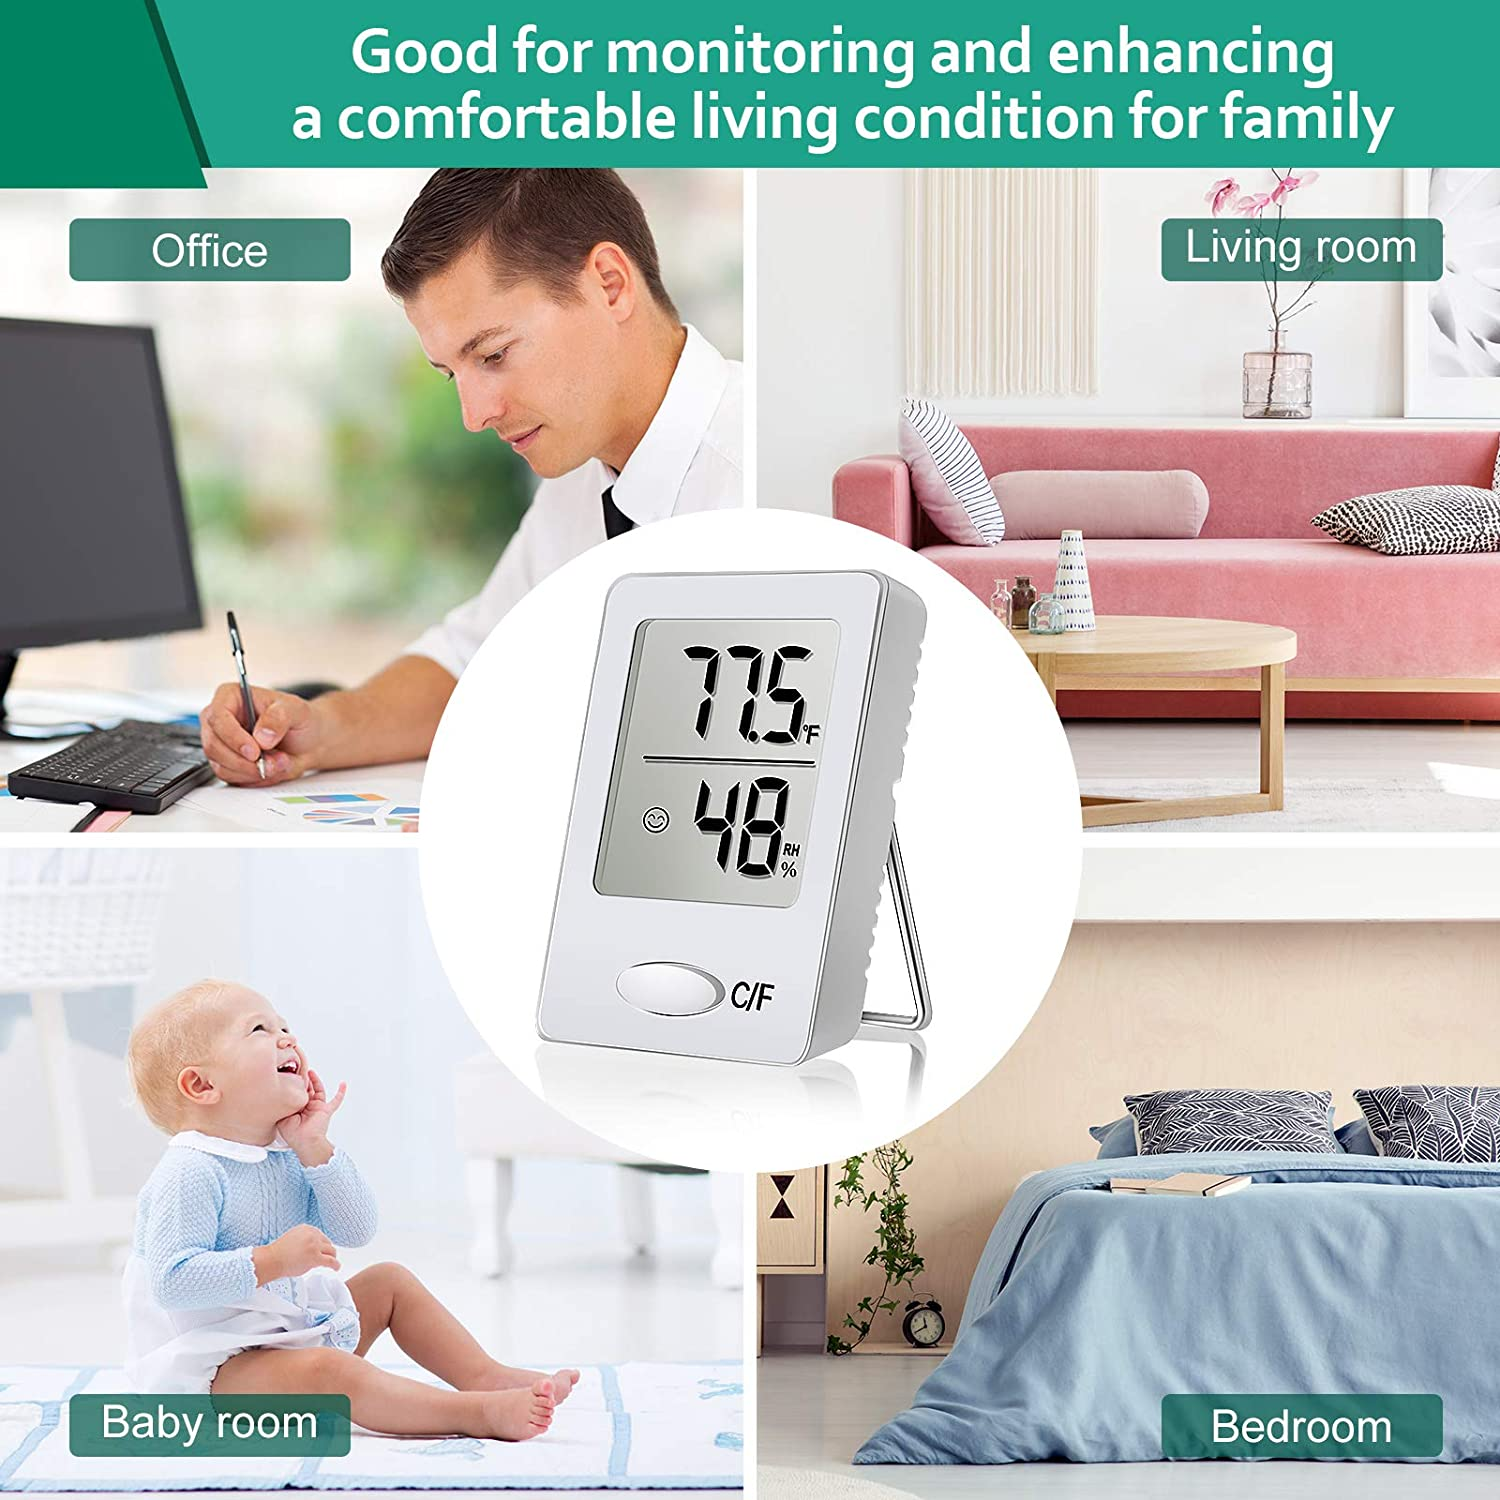 White Weewooday 2 Pieces Digital Hygrometer Mini Indoor Thermometer Humidity Gauge Meter Temperature Humidity Accurate Monitor Meter for Home Office